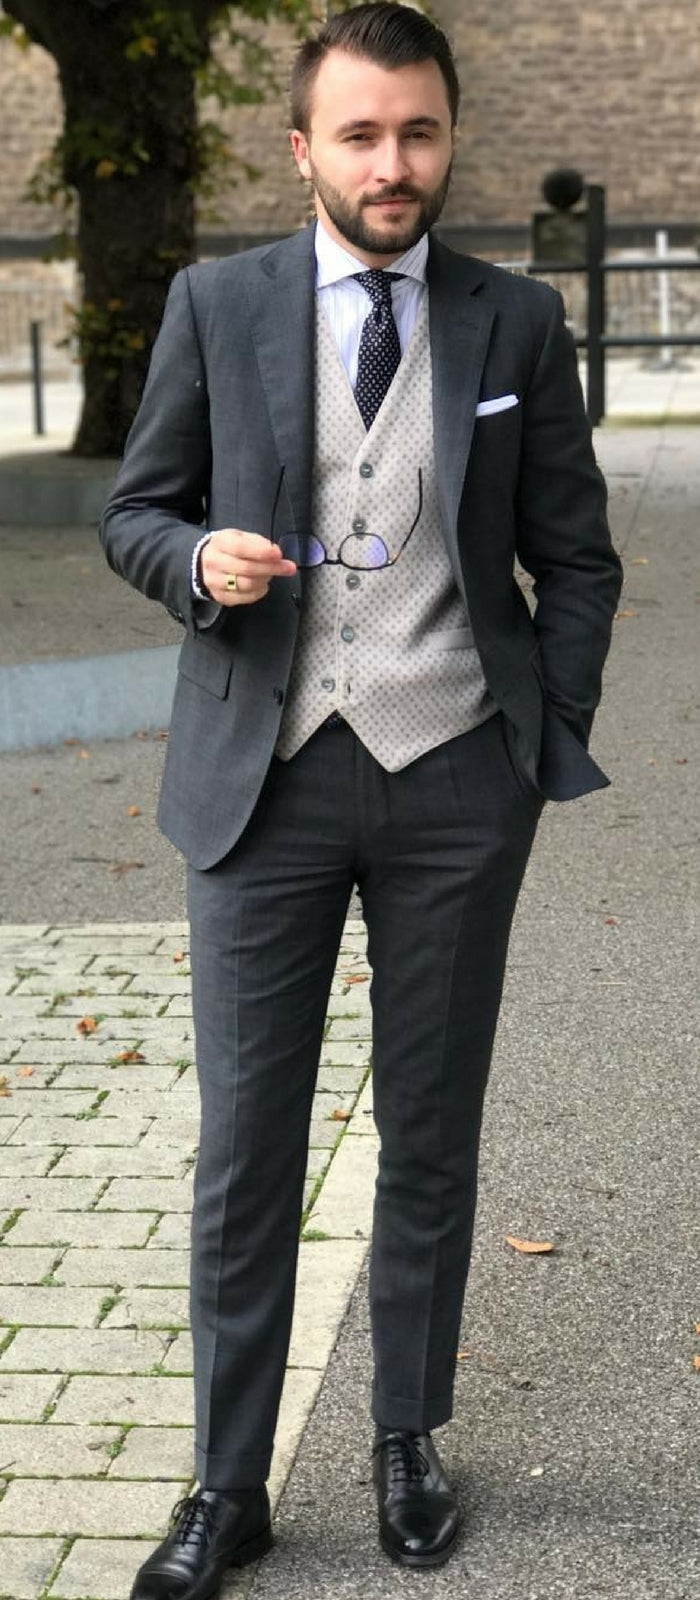 Formal outfit ideas for men